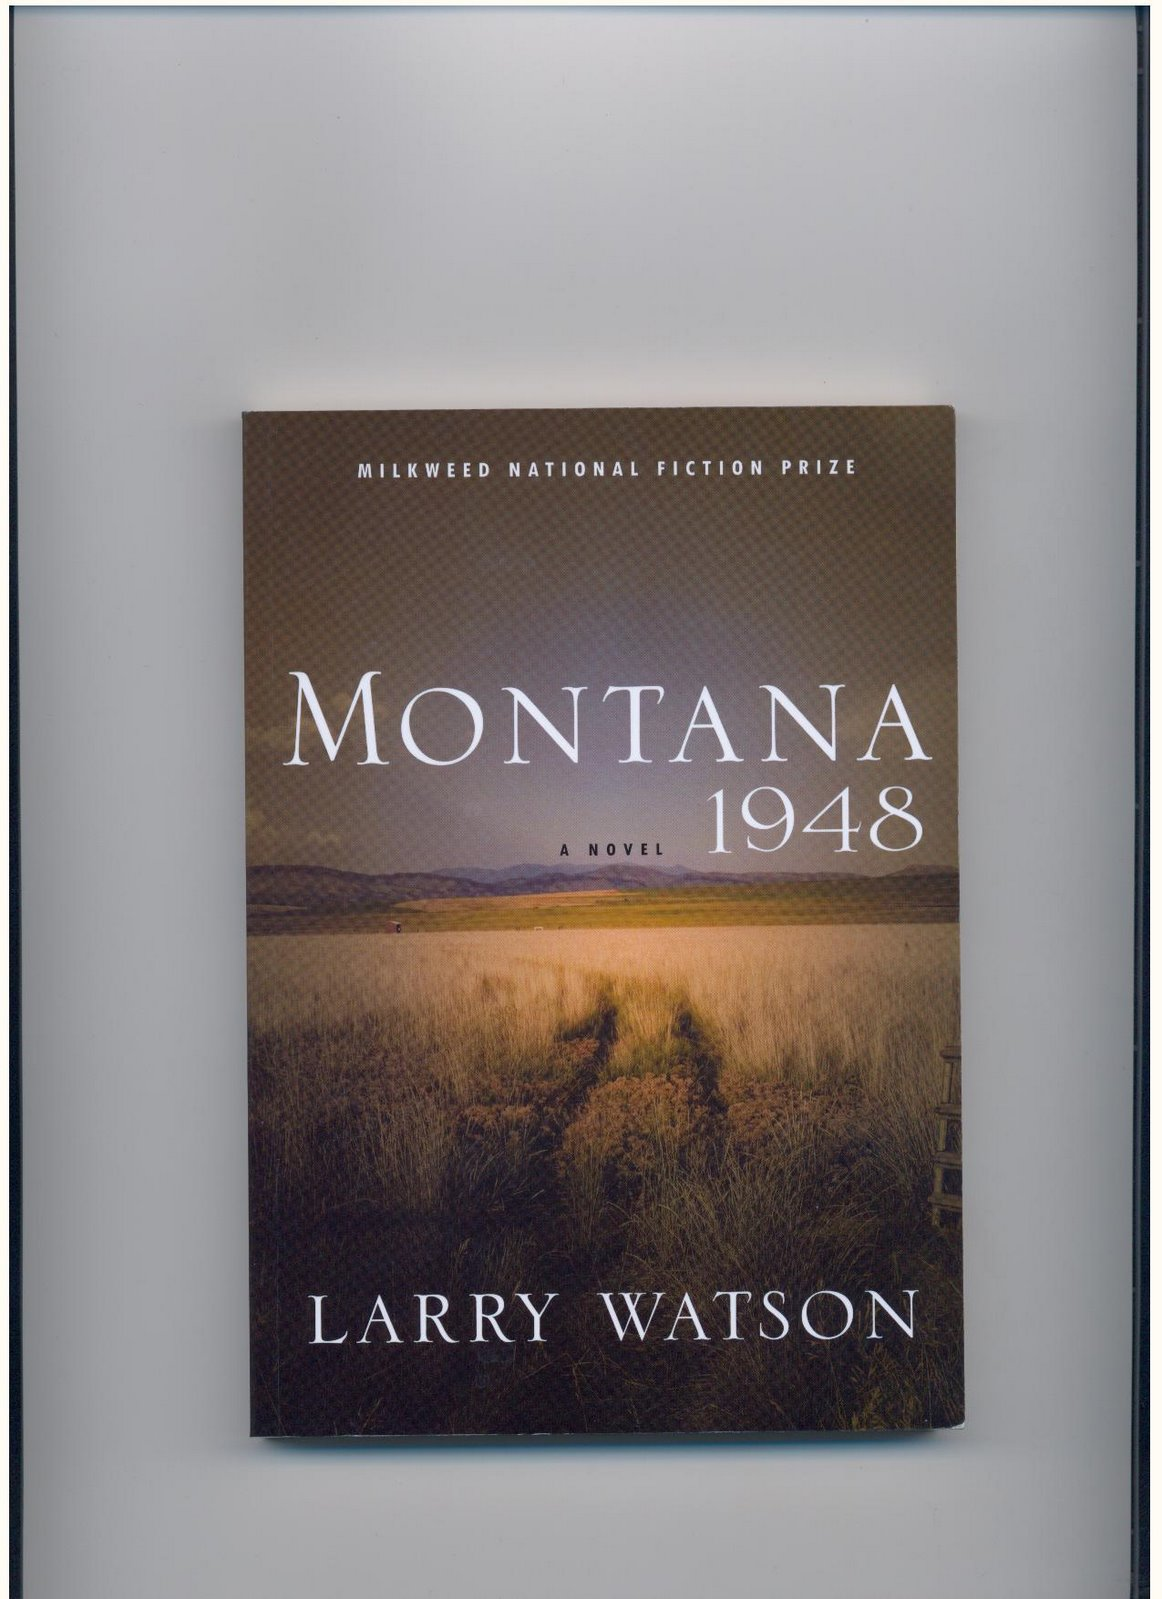 the loss of innocence in montana 1948 by larry watson Montana 1948 submitted by trudy schrandt (profile) this book is about the horrific events that consumed the summer of 1948 in bentrock, montana the events are seen through the viewpoint of a 12-year-old boy, now 52, who is looking back 40 years to understand how and why his life was.